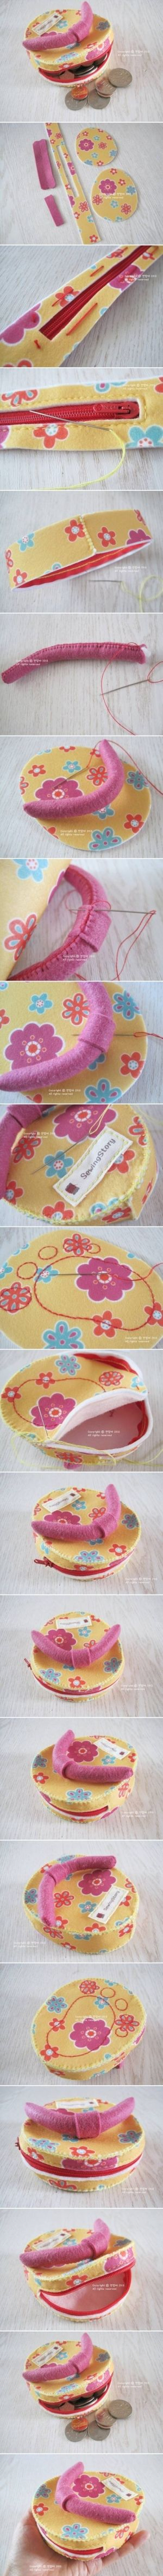 How To Make custom Flip Flop money bag step by step DIY tutorial instructions, How to, how to do, diy instructions, crafts, do it yourself, by Mary Smith fSesz